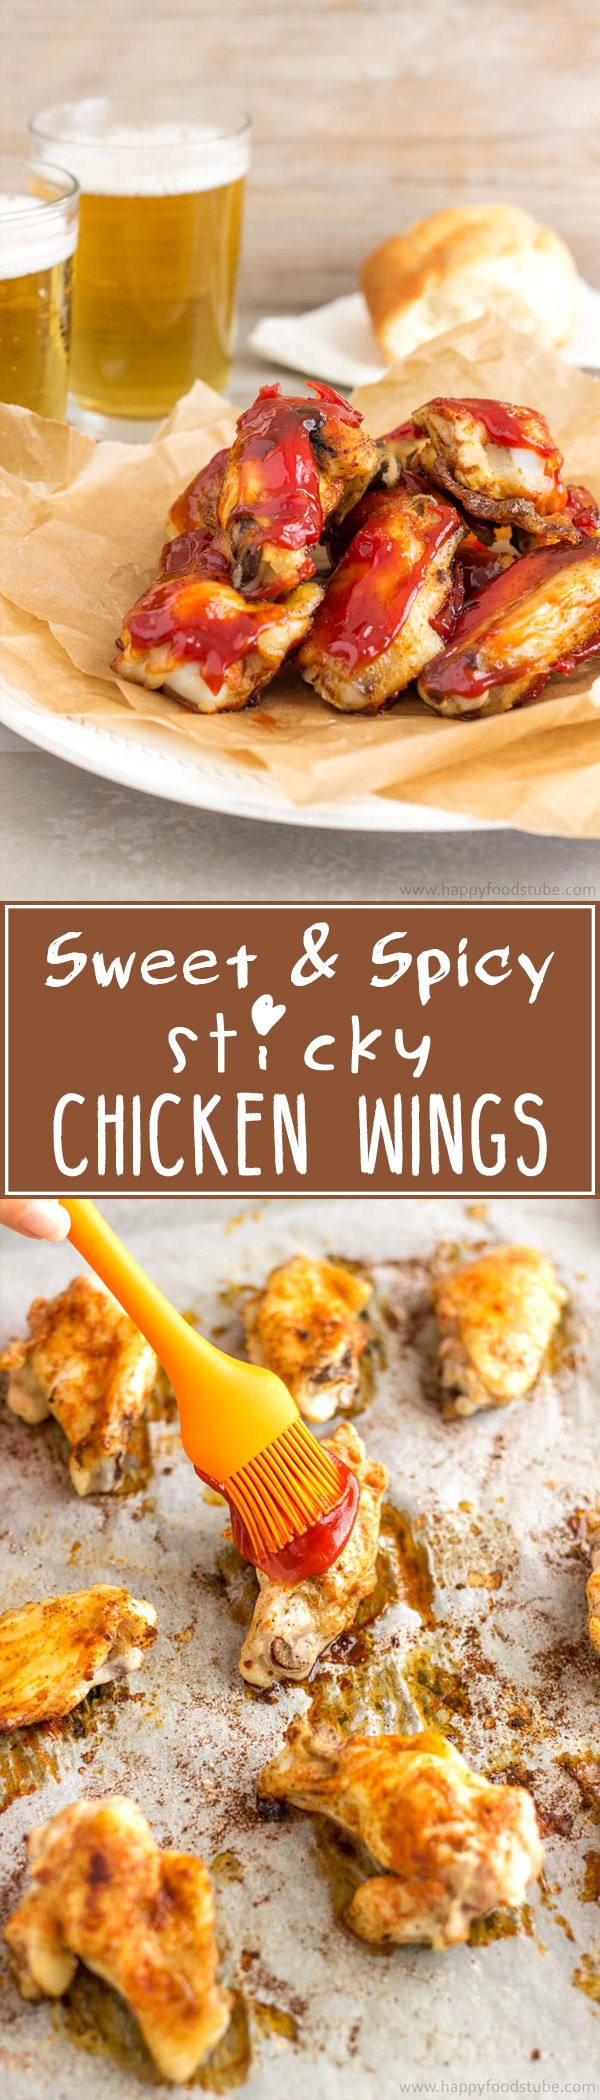 Easy Sweet and Spicy Sticky Chicken Wings. Baked in the oven with the best chicken wing sauce recipe! Simple ingredients, 5 min to prepare, 45 min in the oven!   happyfoodstube.com